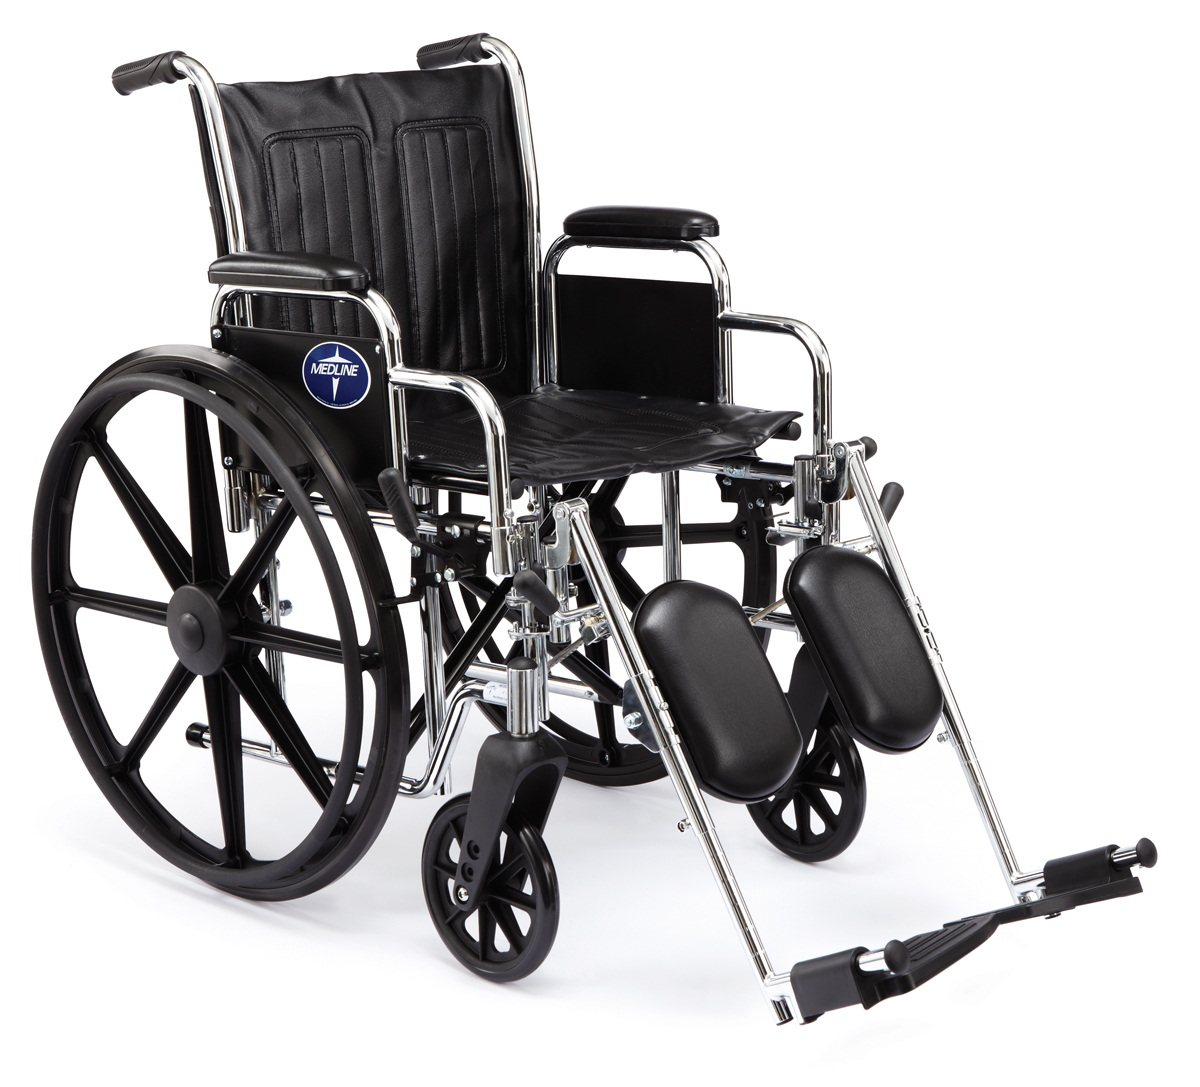 WHEELCHAIR,EXCEL,16I N,PER,FLA,S/A FT,NV,EA